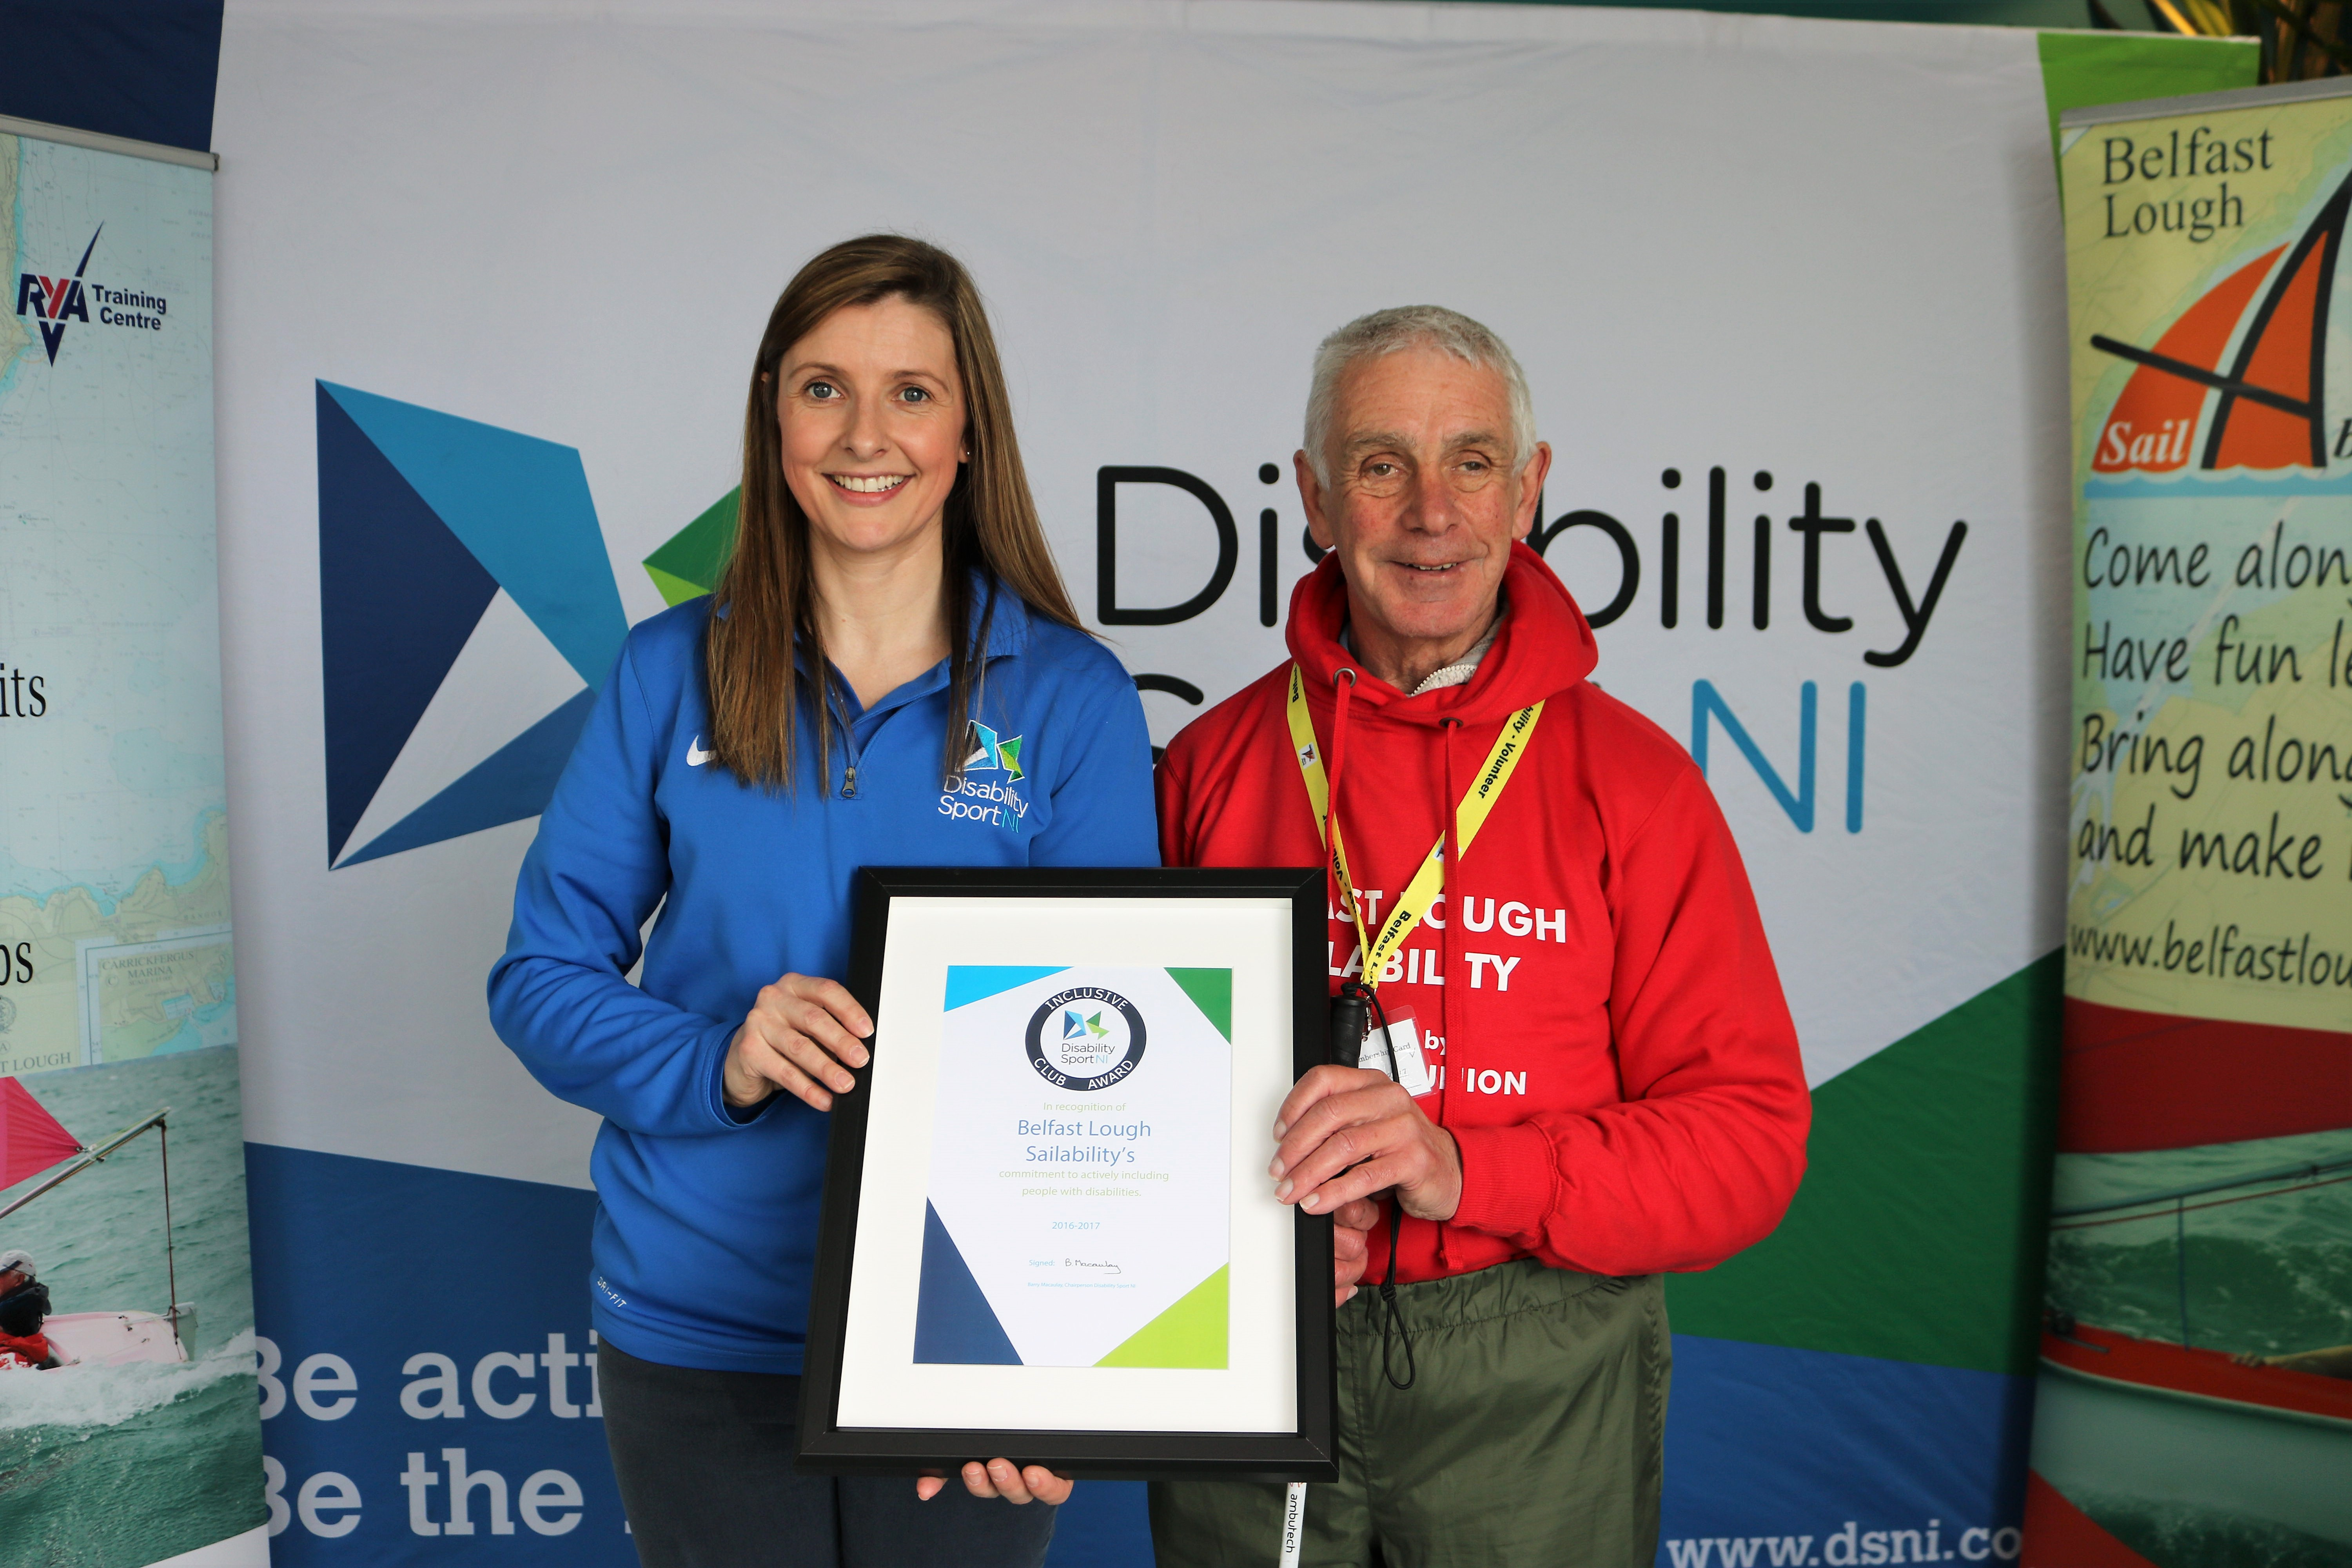 Elaine Reid from Disability Sport NI presents Bill Foster from Belfast Lough Sailability with The Inclusive Club Award.